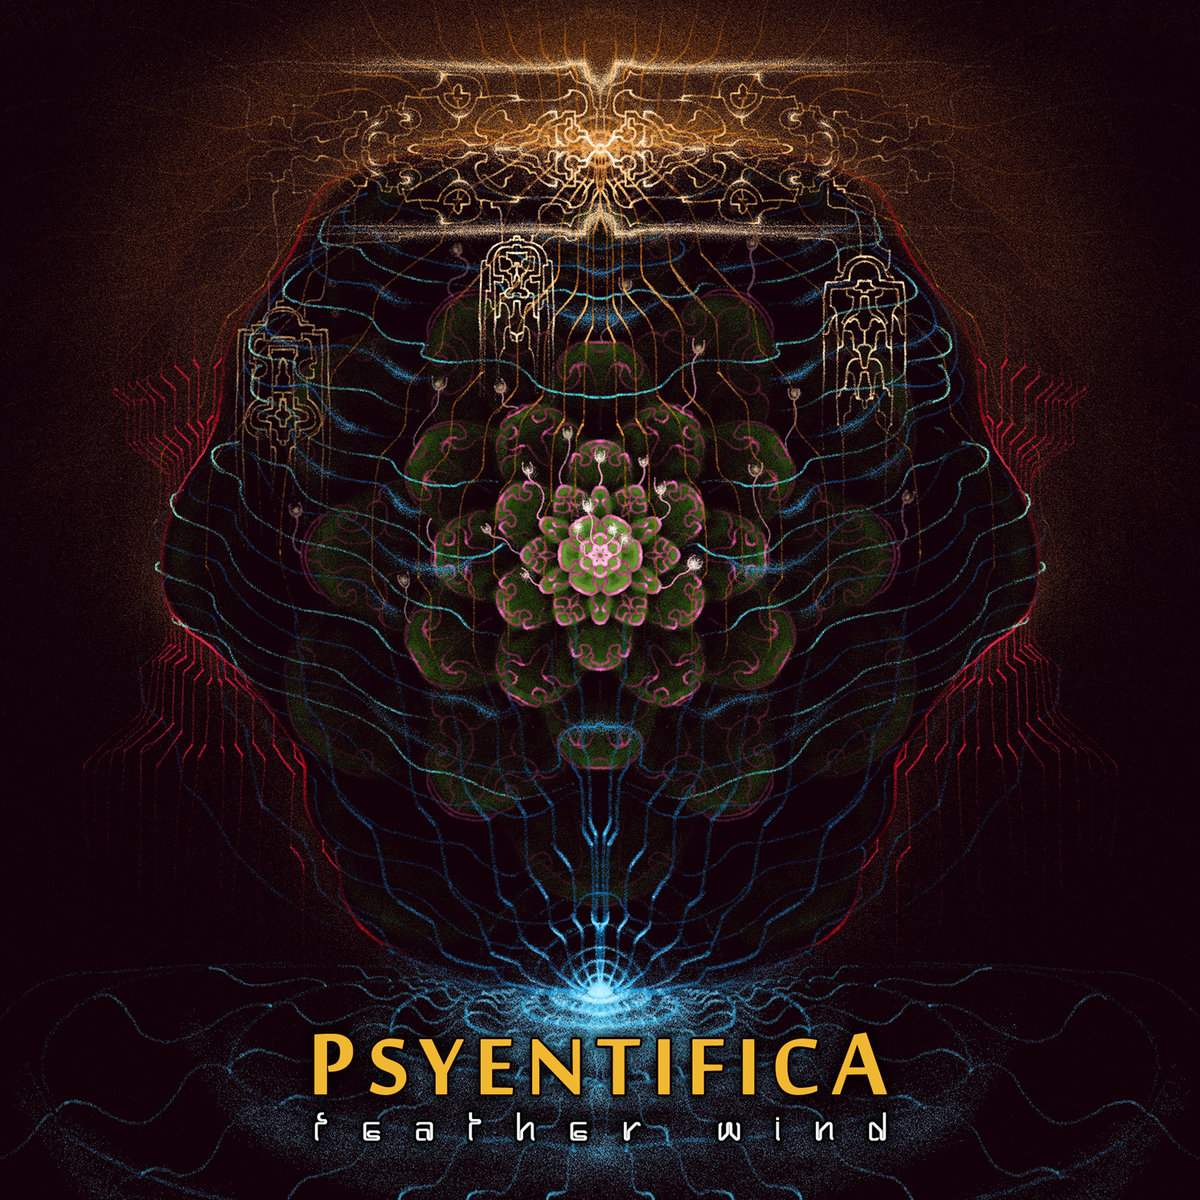 Psyentifica - Updraft @ 'Feather Wind' album (canada, chillout)